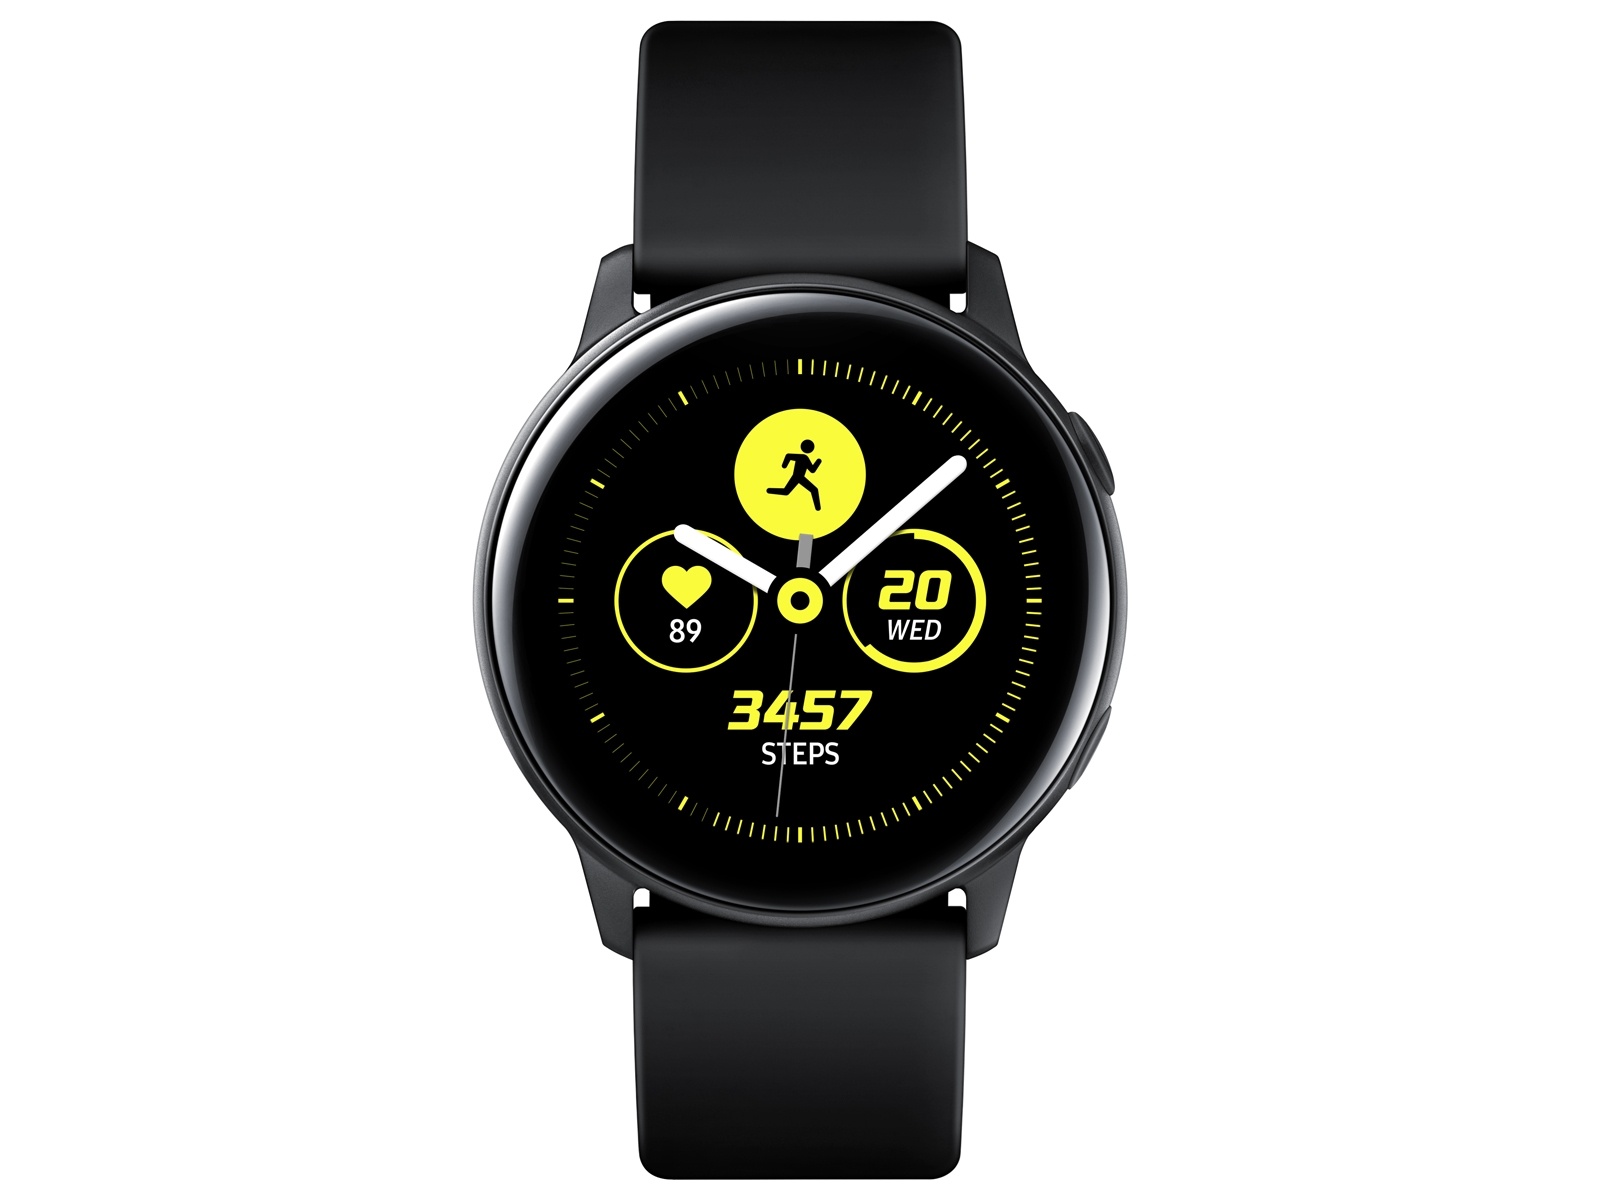 ef9046132 Galaxy Watch Active (40mm) Black Wearables - SM-R500NZKAXAR | Samsung US